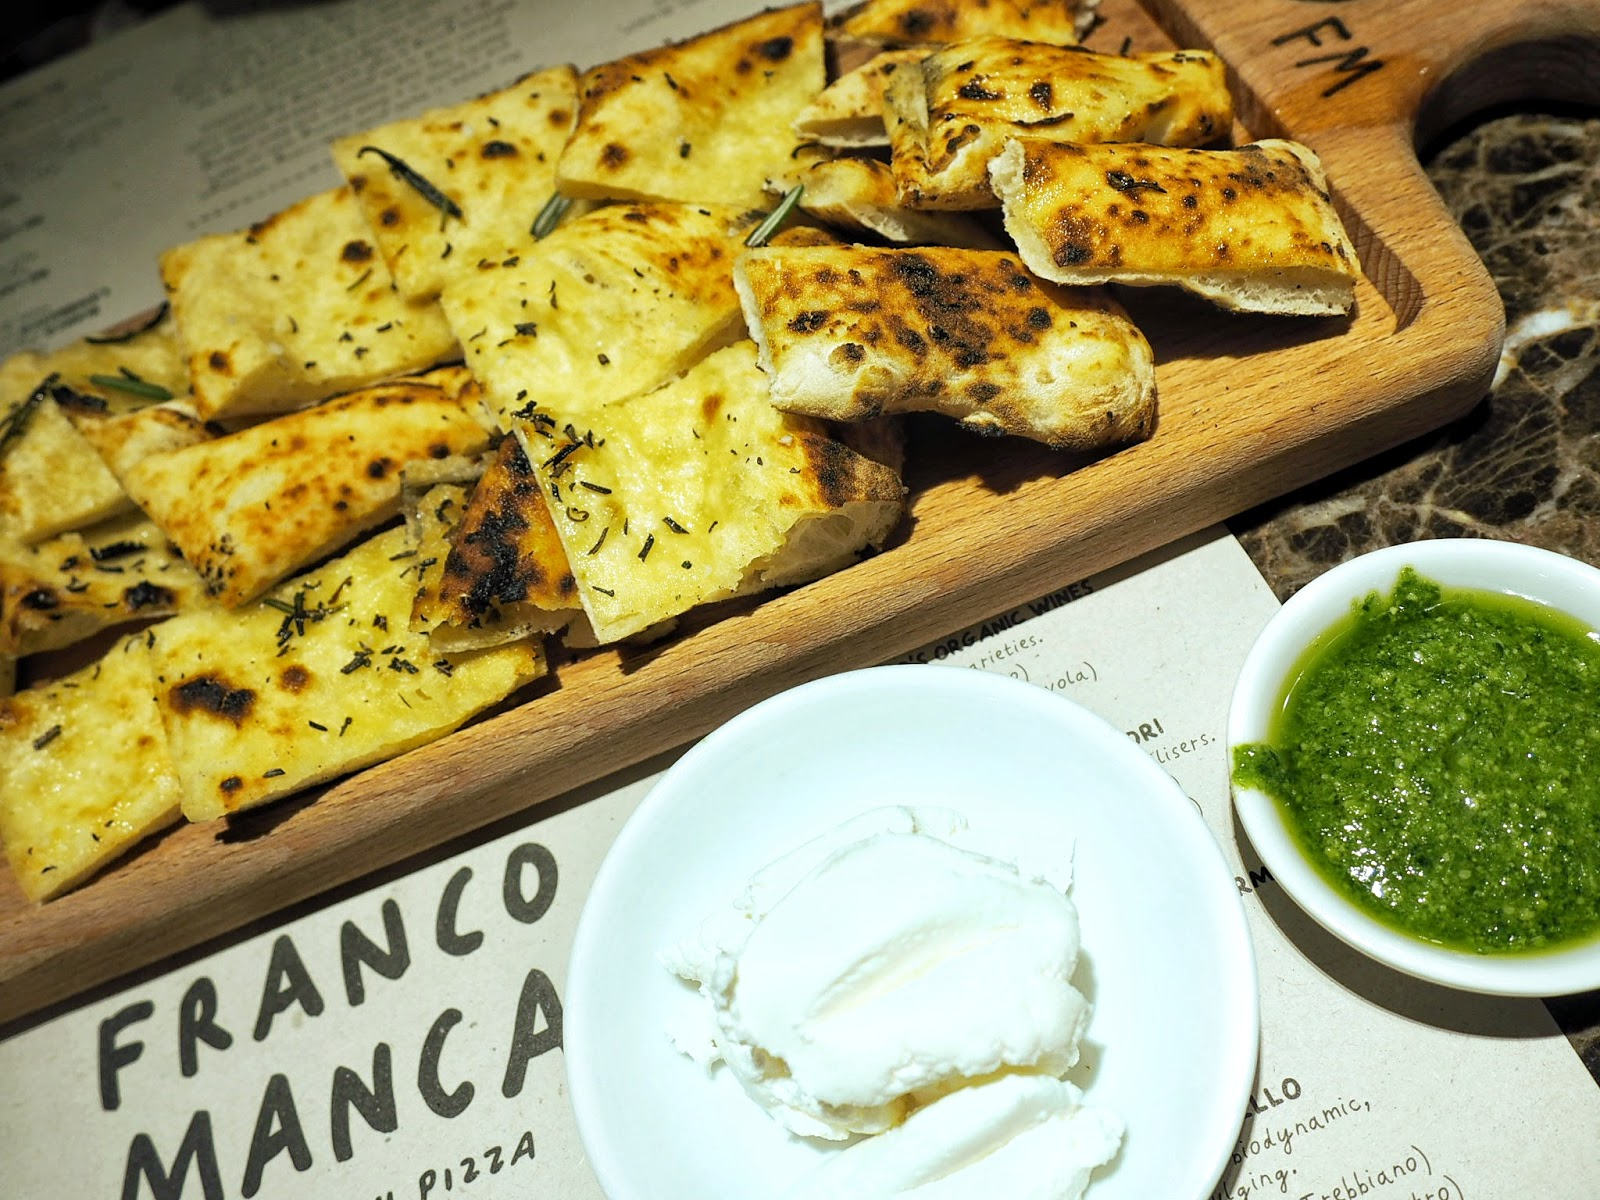 Franco Manca Garlic and Rosmary flat bread